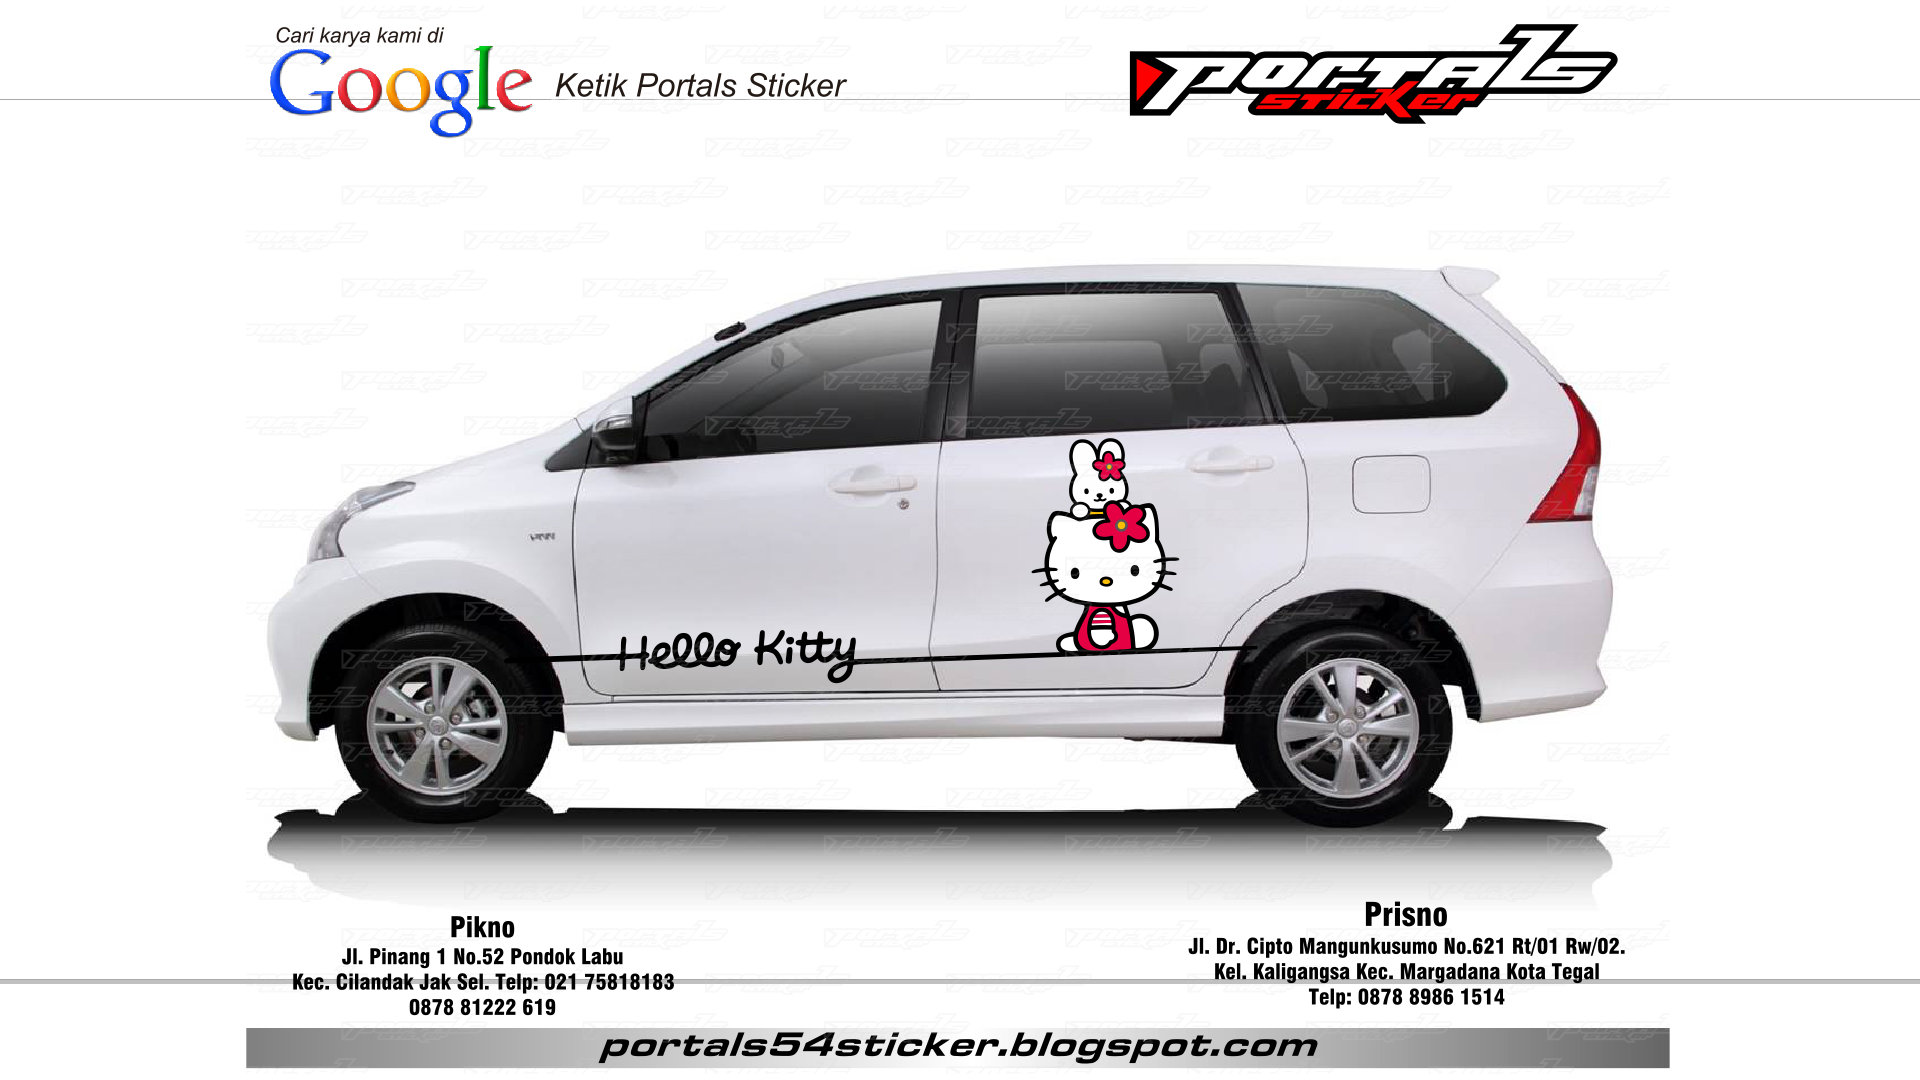 Jual sticker toyota avanza hello kity portals sticker tokopedia